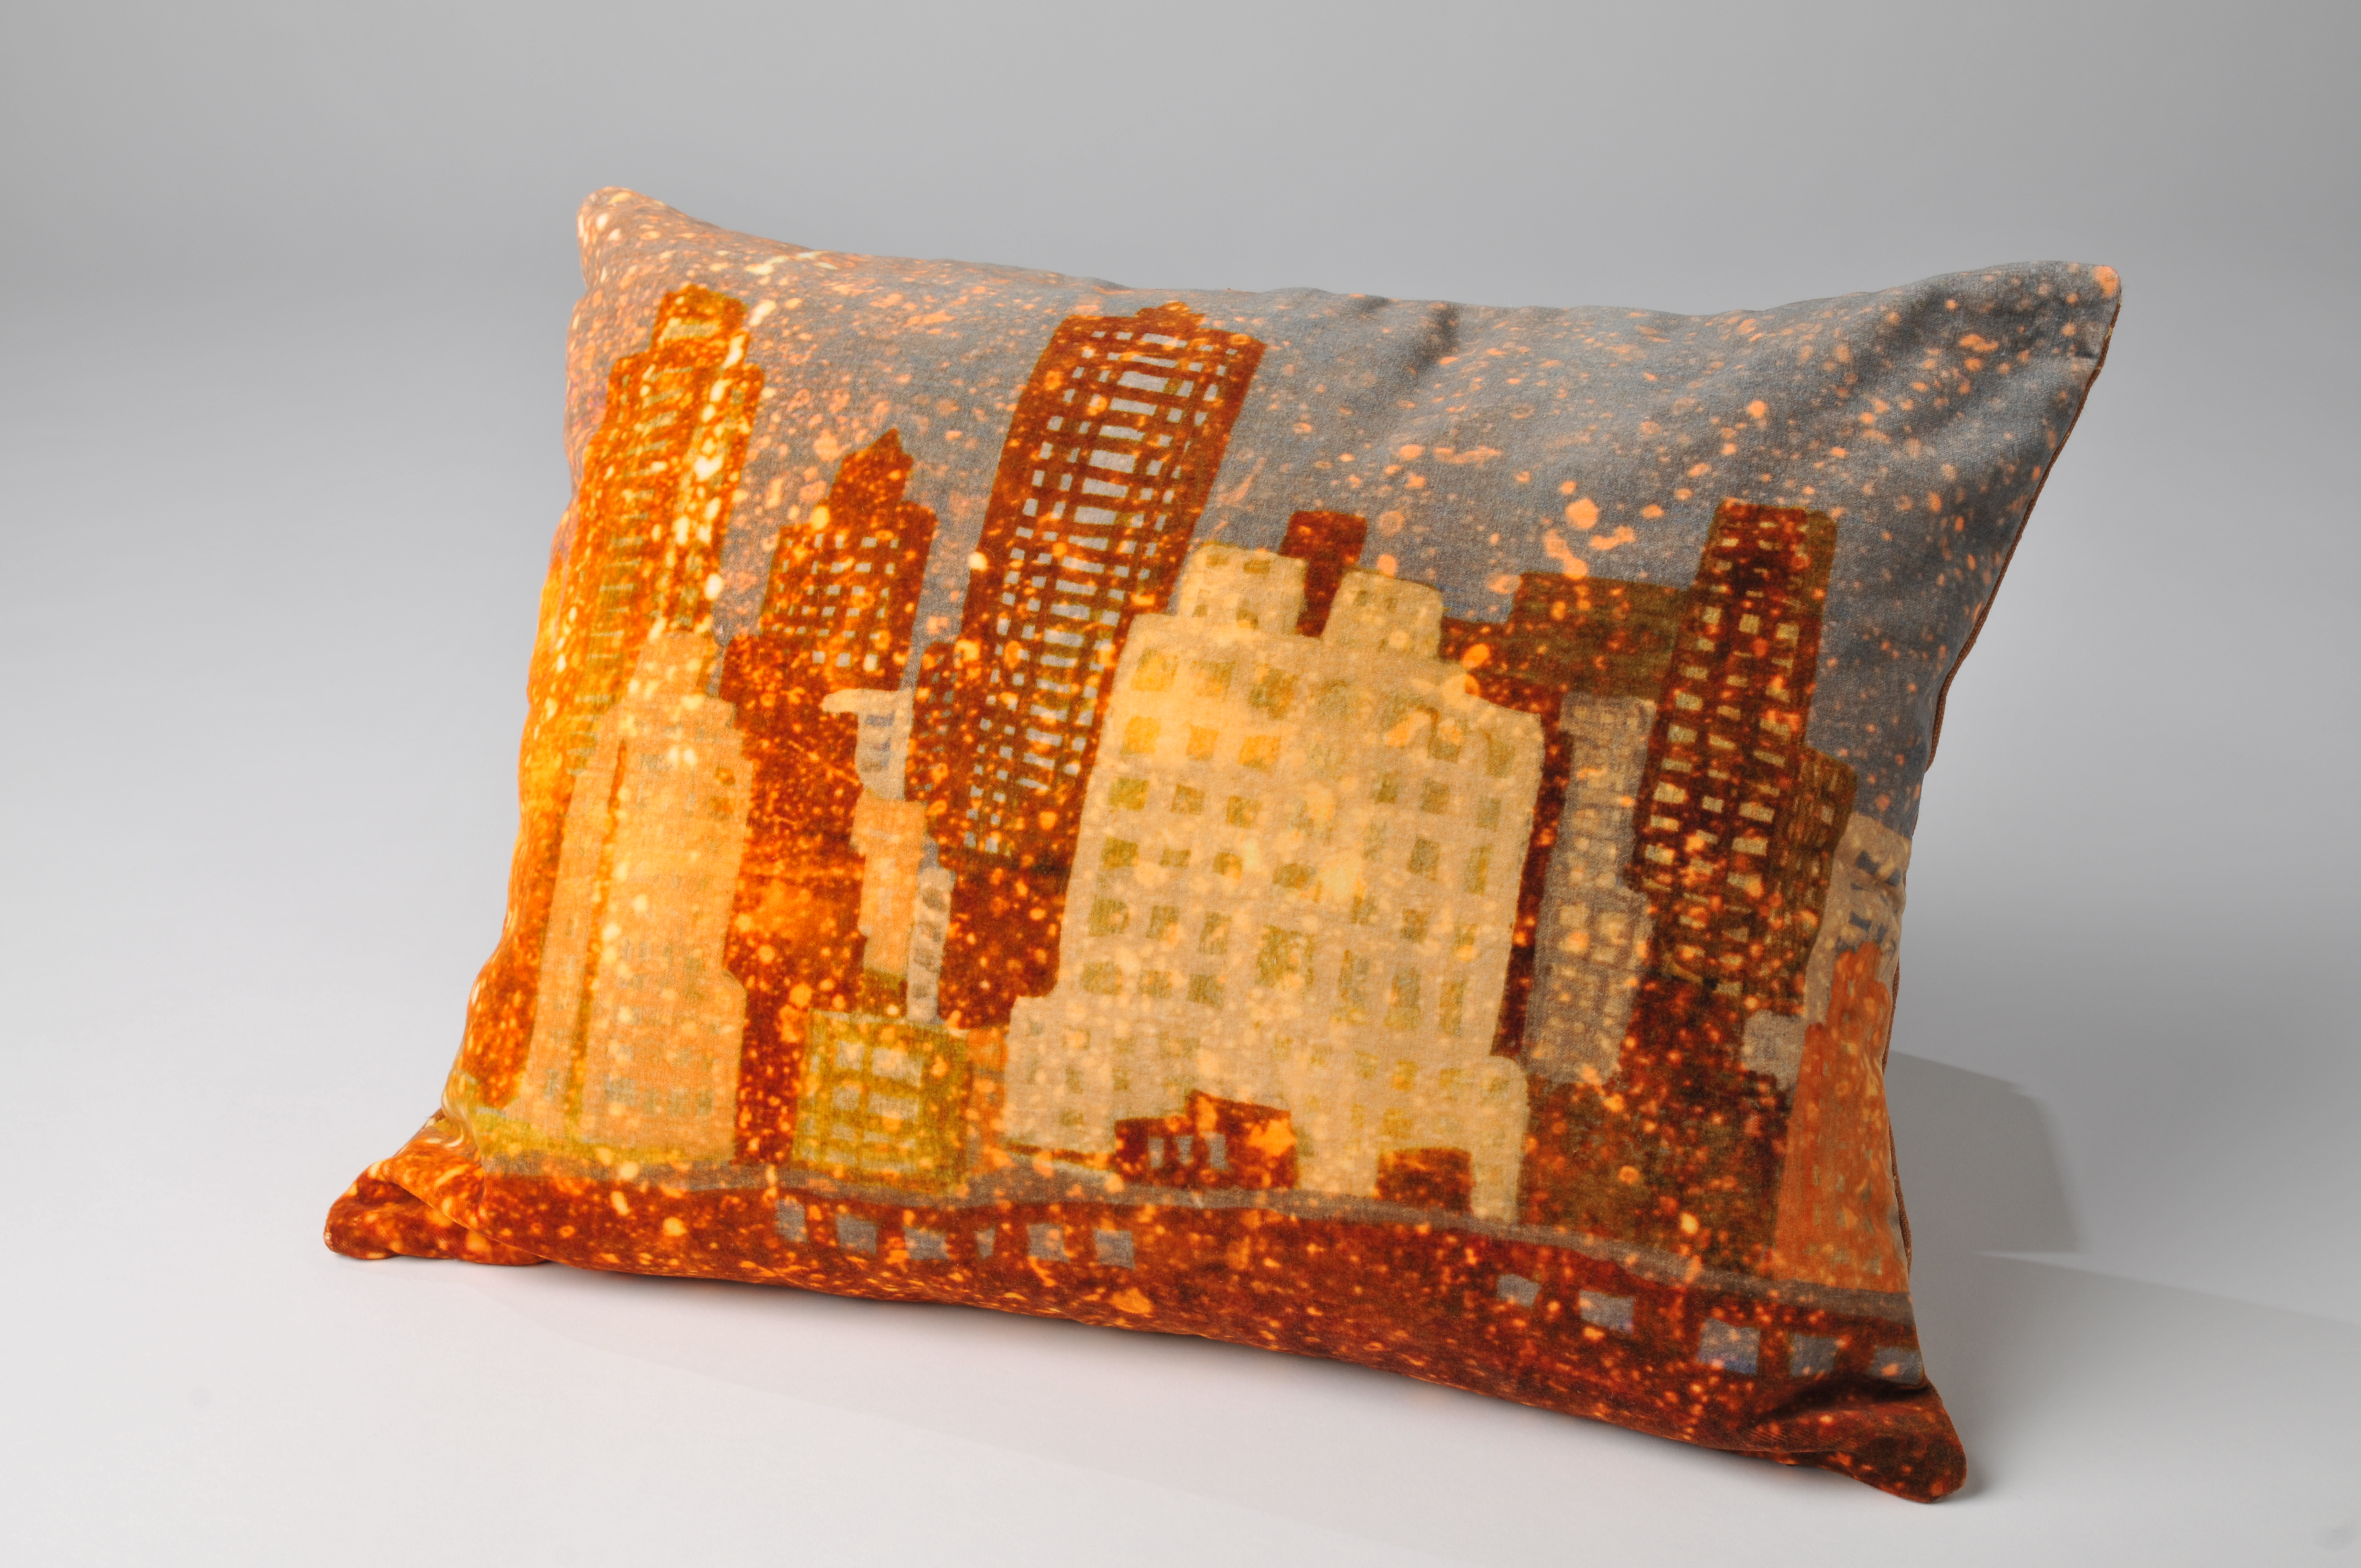 Skyscraper Cushion